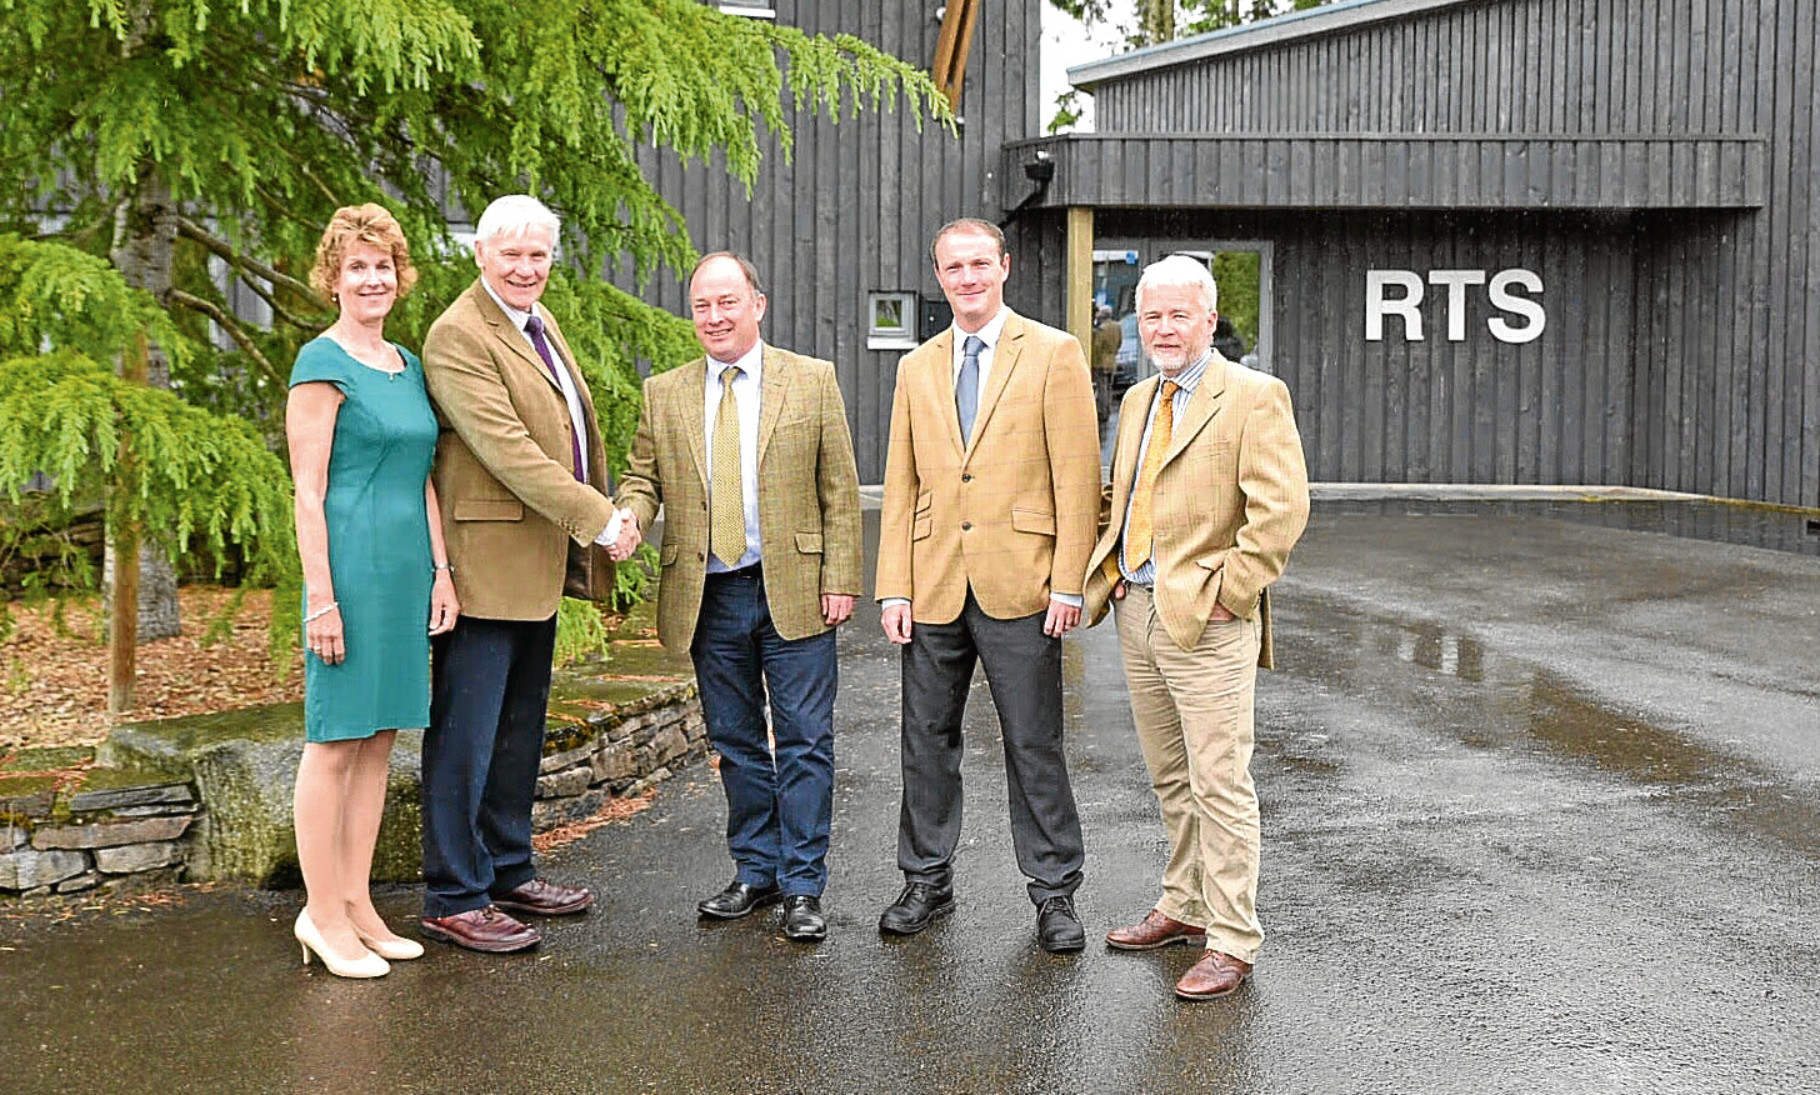 Alan and Heather Robbins hand over to RTS co-directors Norman O'Neill, Ross Kennedy and Harry Wilson.